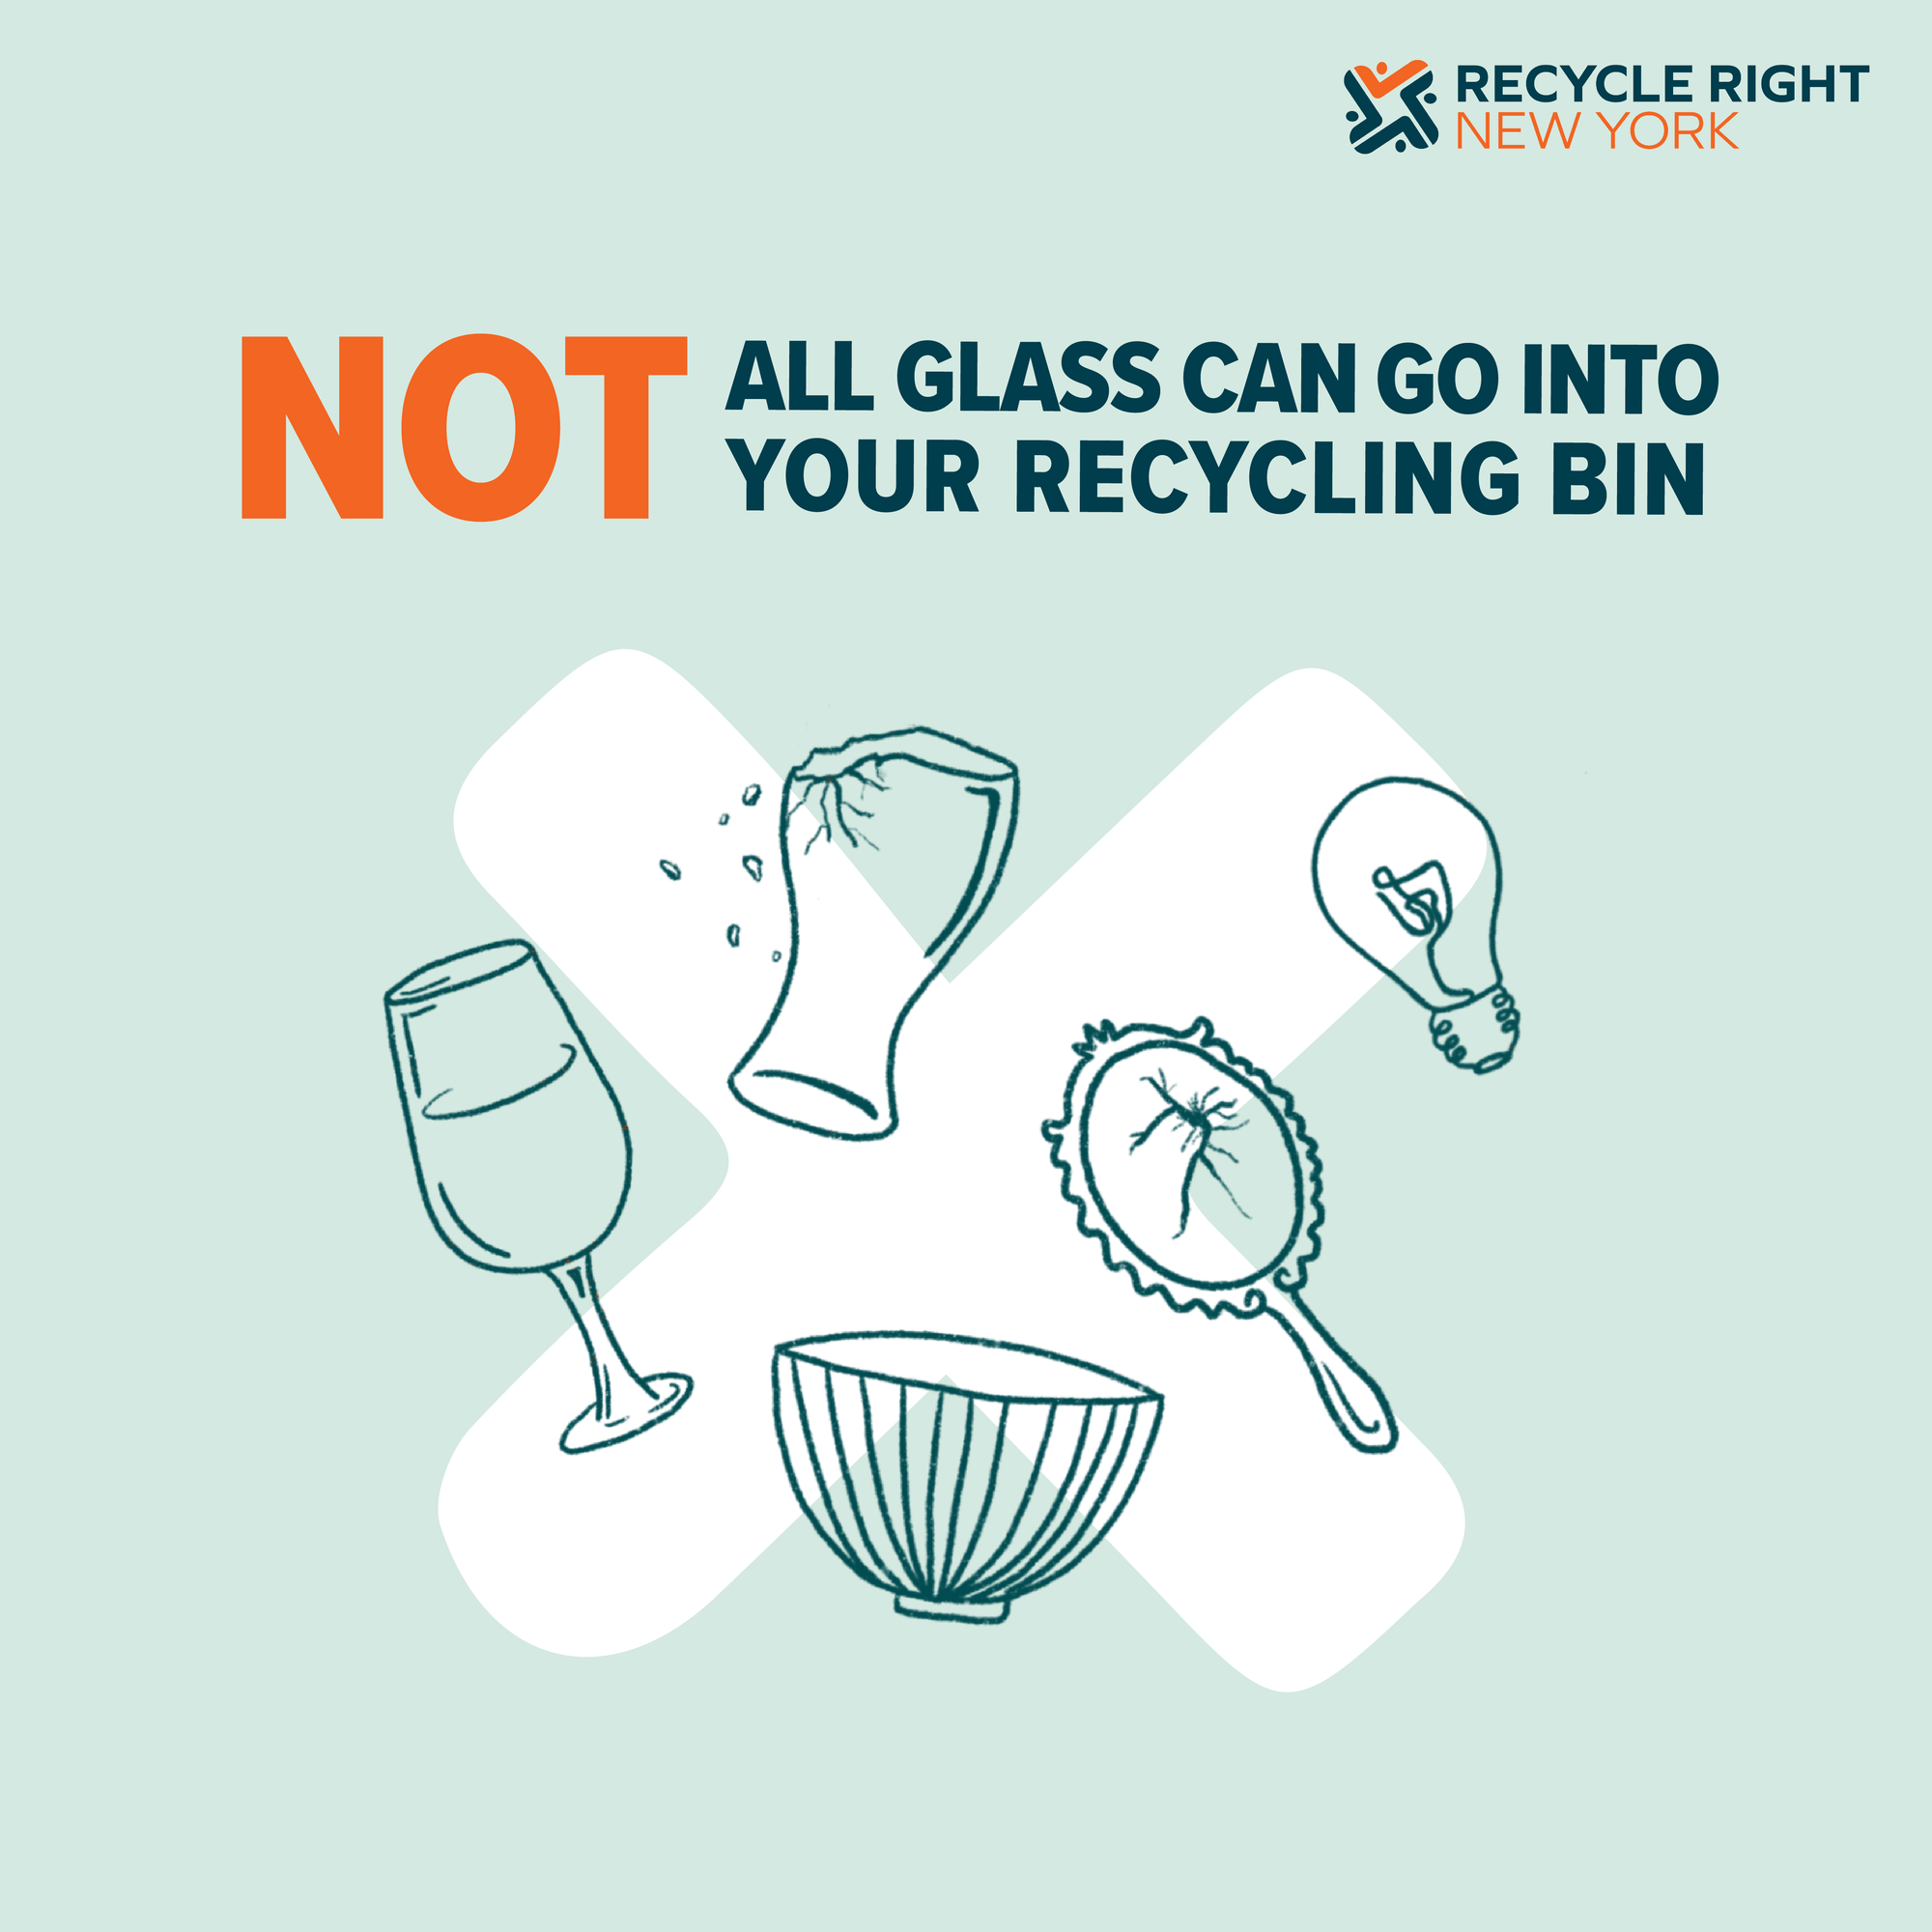 Not all glass can go in your recycling bin